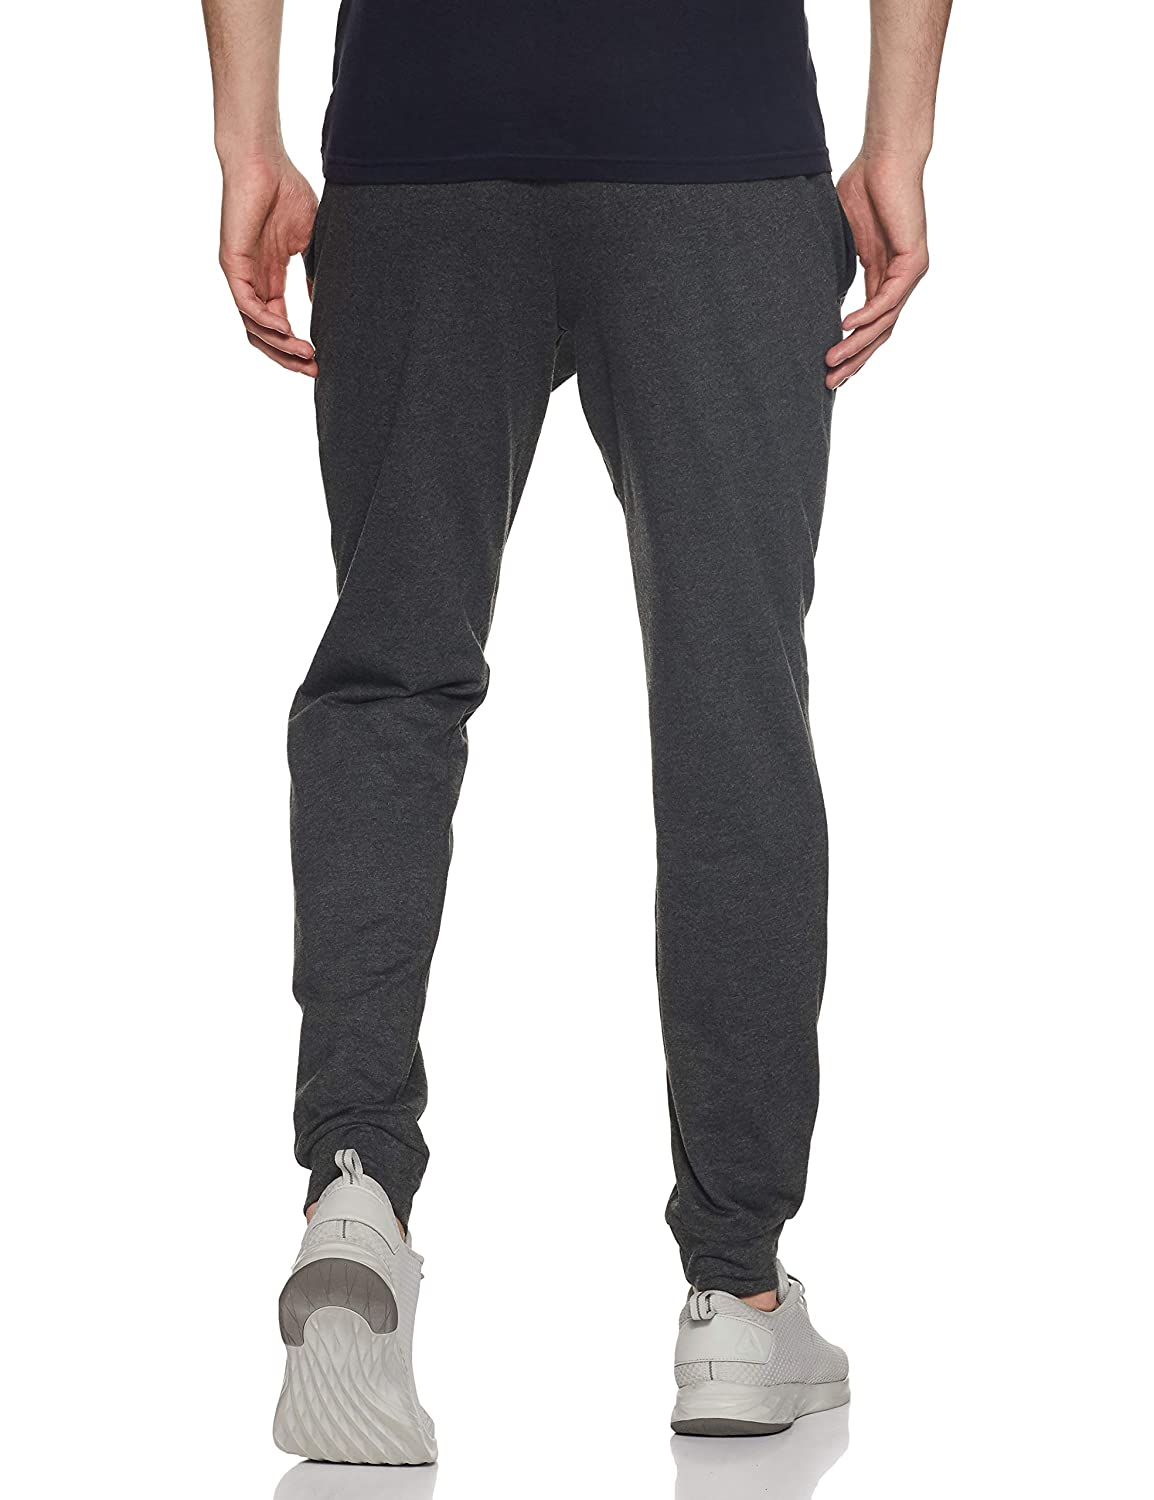 bcce5909ab9b4 Amazon.com : New Balance Men's NB Warm Up Jogger, Black Heather ...